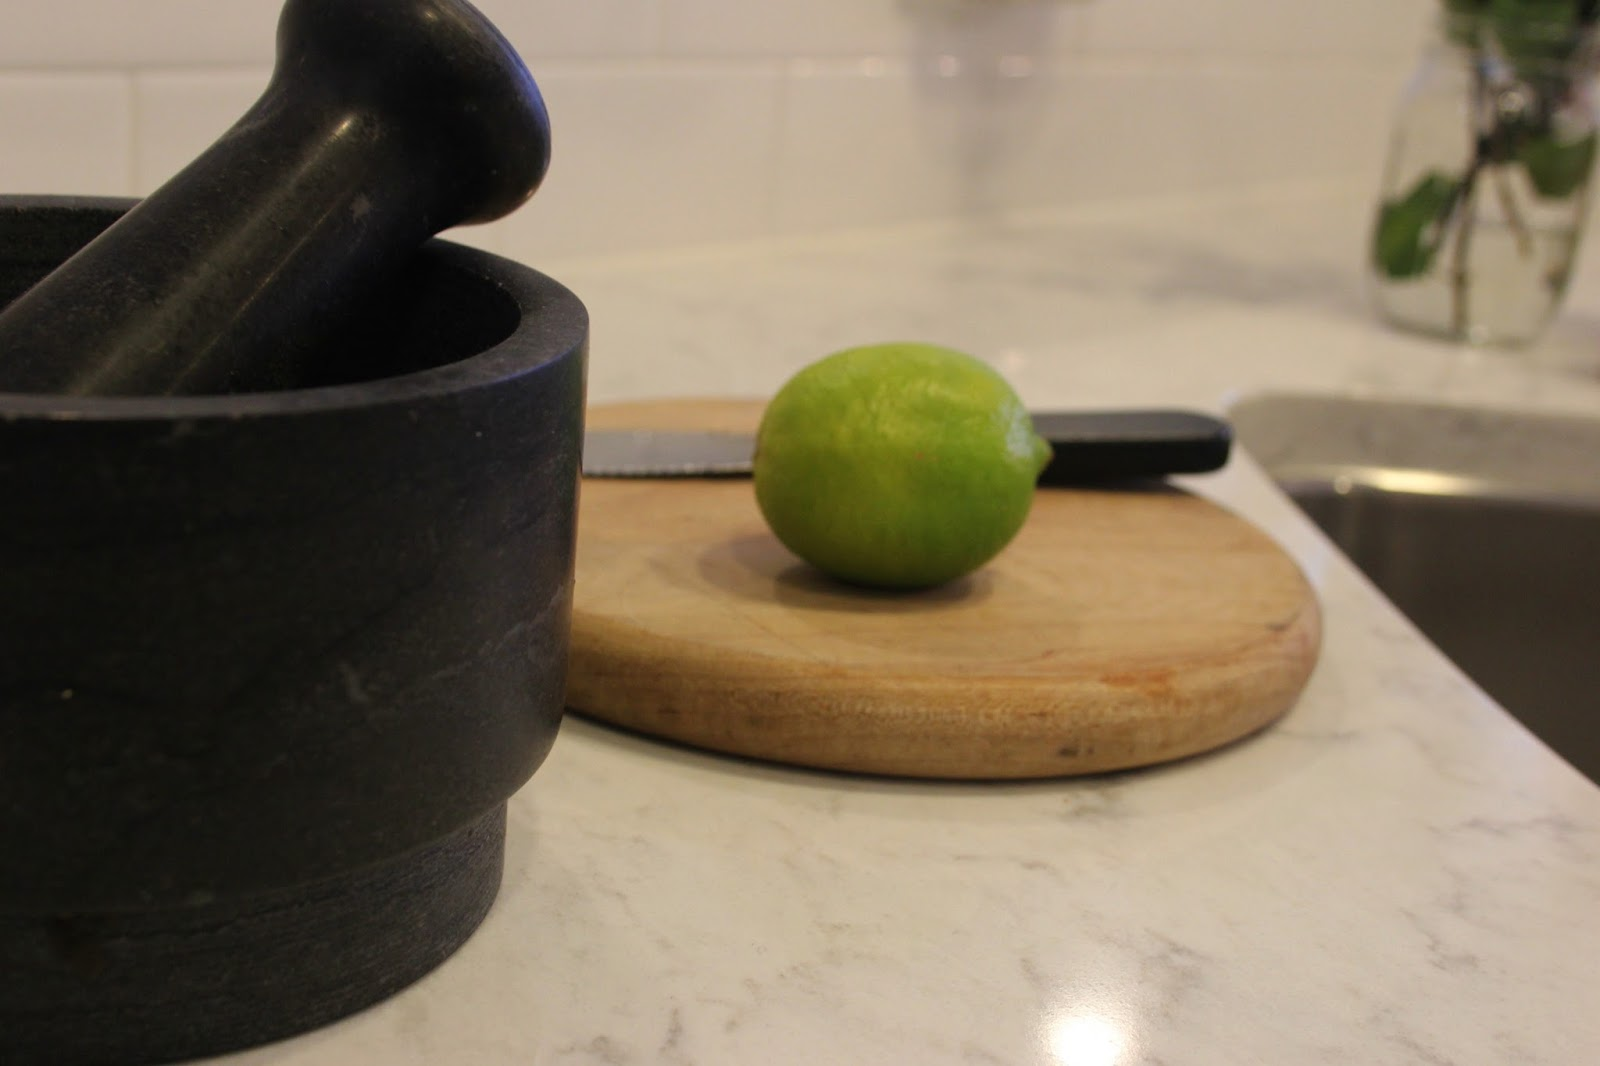 A black mortar and pestle, rustic wood board, and lime on a quartz countertop in the kitchen. #minuet #whitequartz #viatera